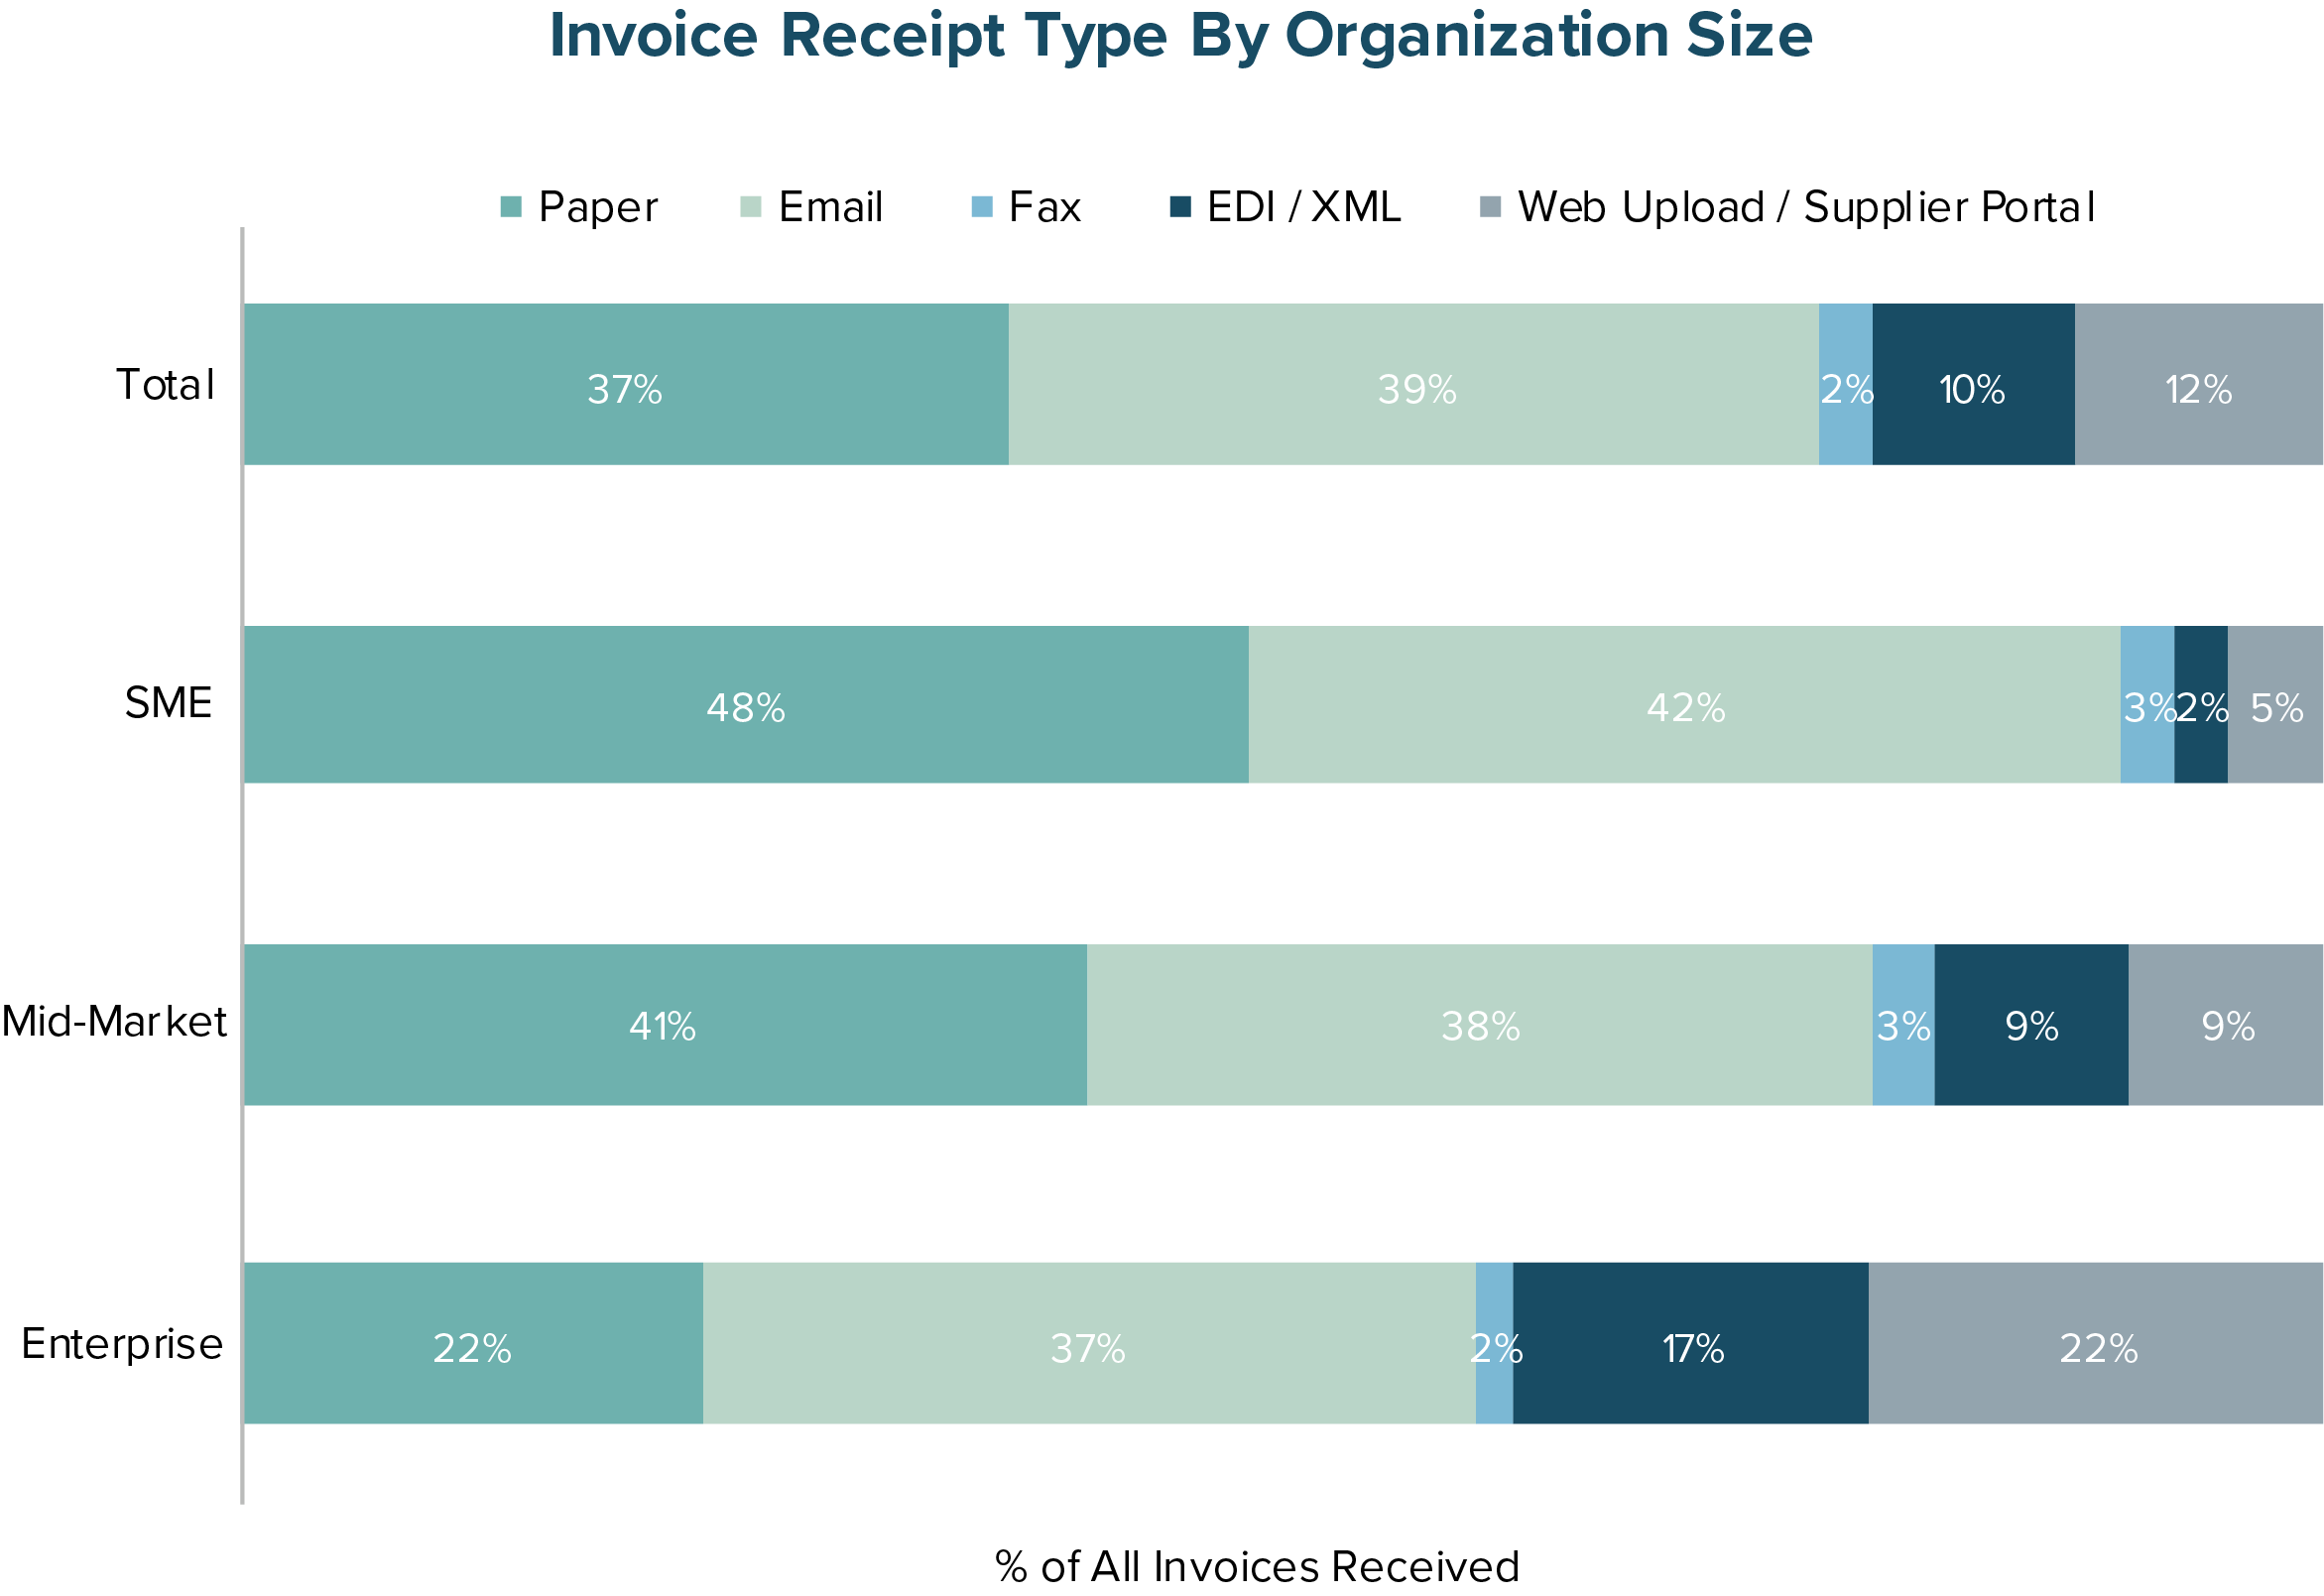 Invoice Receipt Type By Organization Size